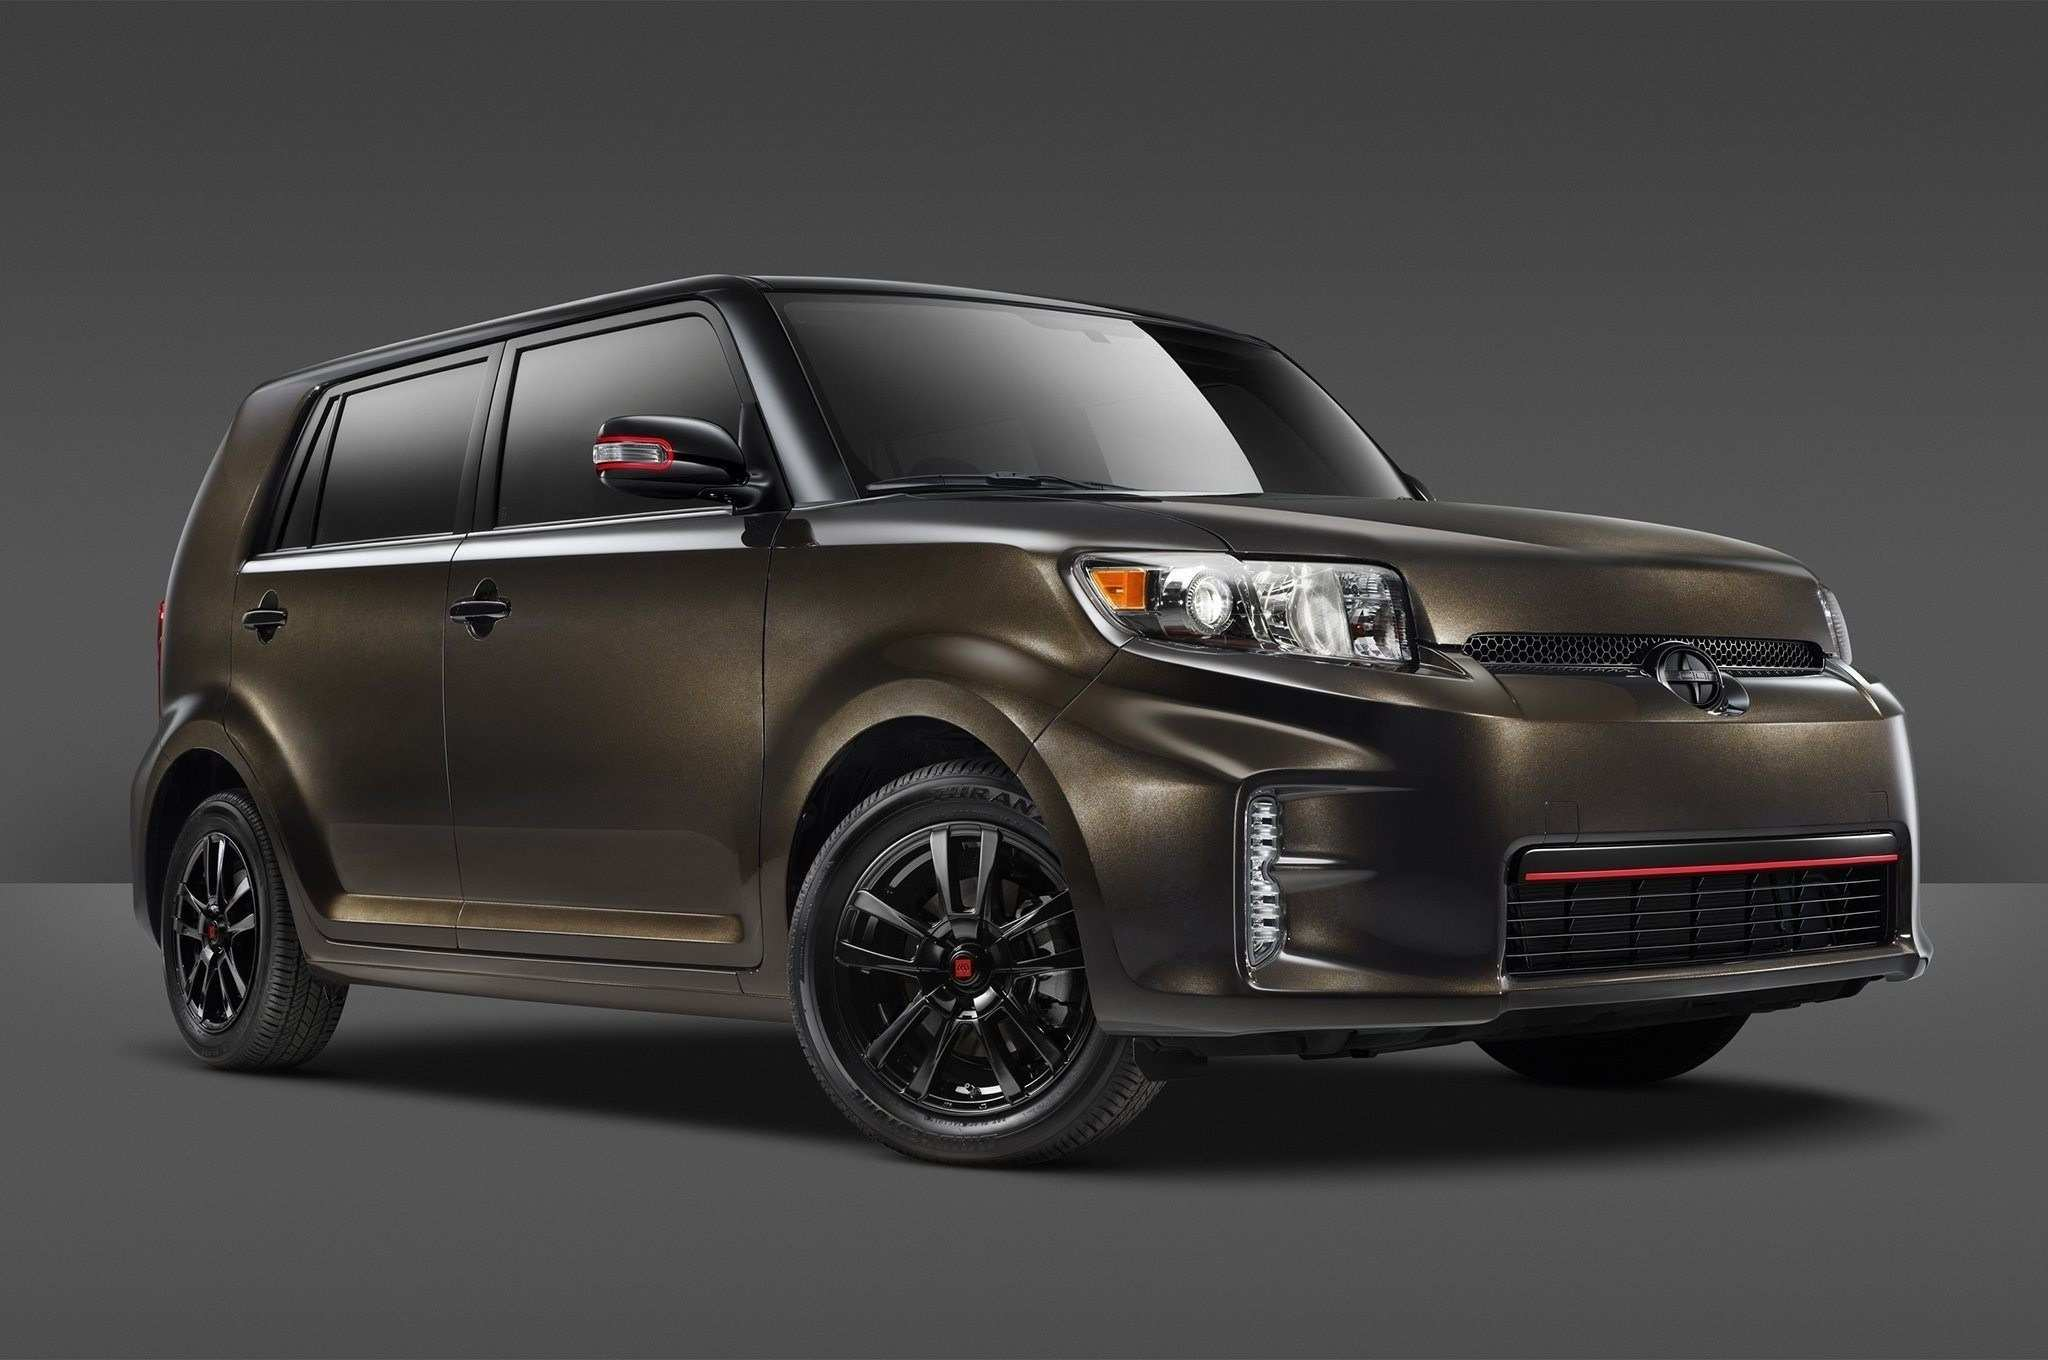 58 Great 2019 Scion Xb Release Date Images with 2019 Scion Xb Release Date